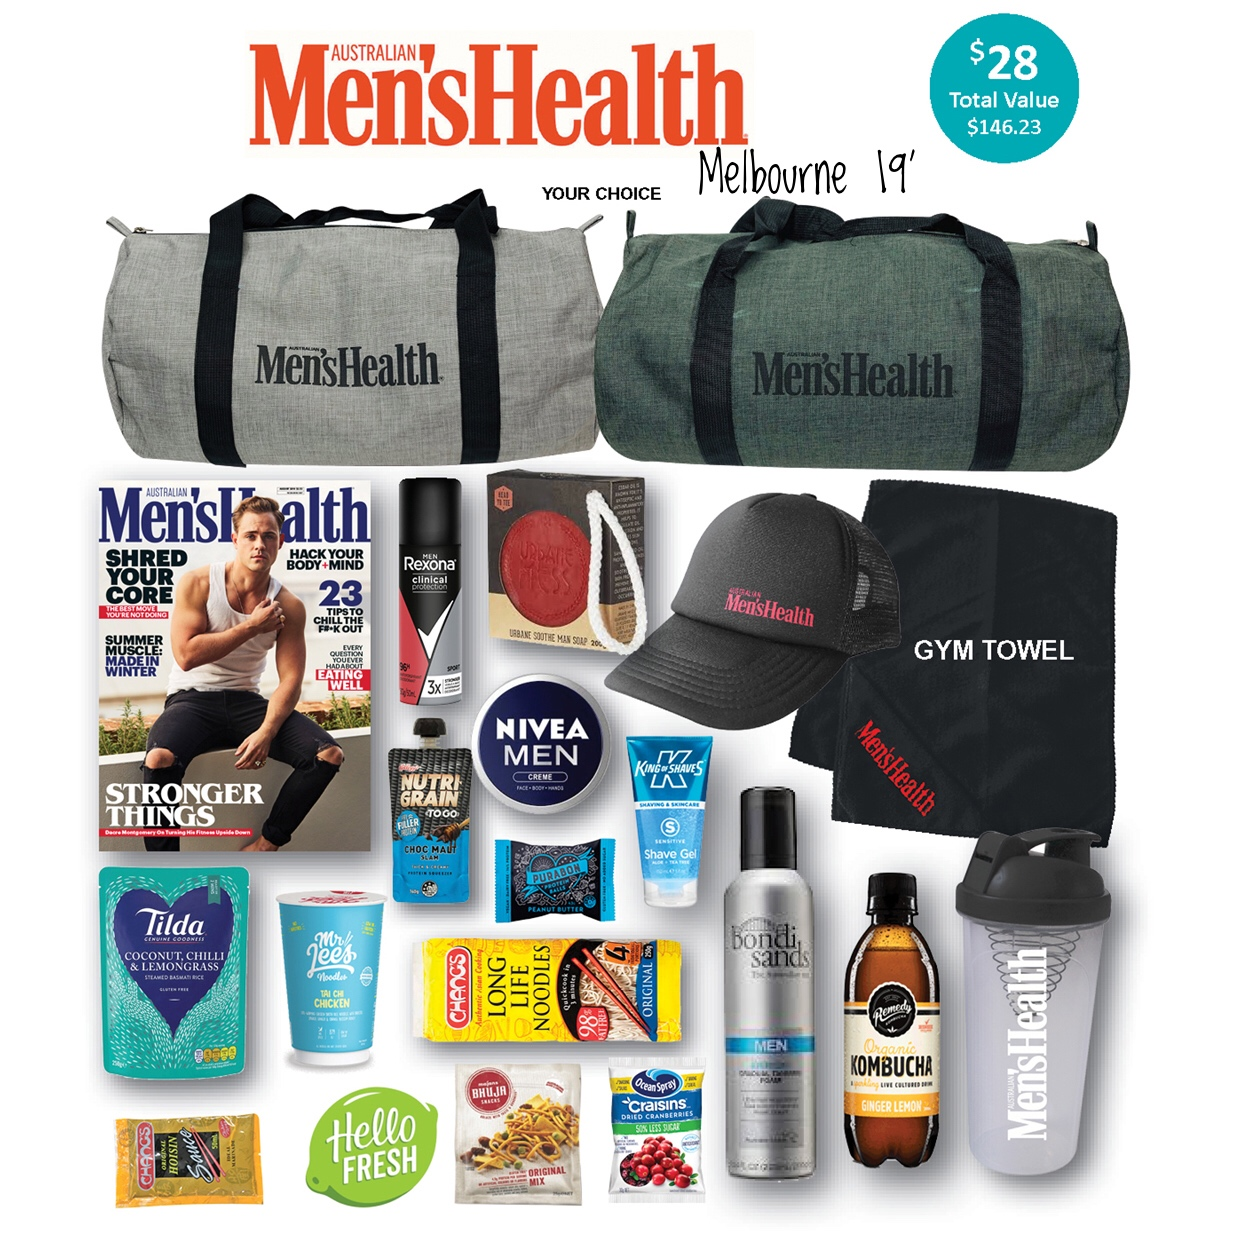 Men's Health - Melbourne 19'